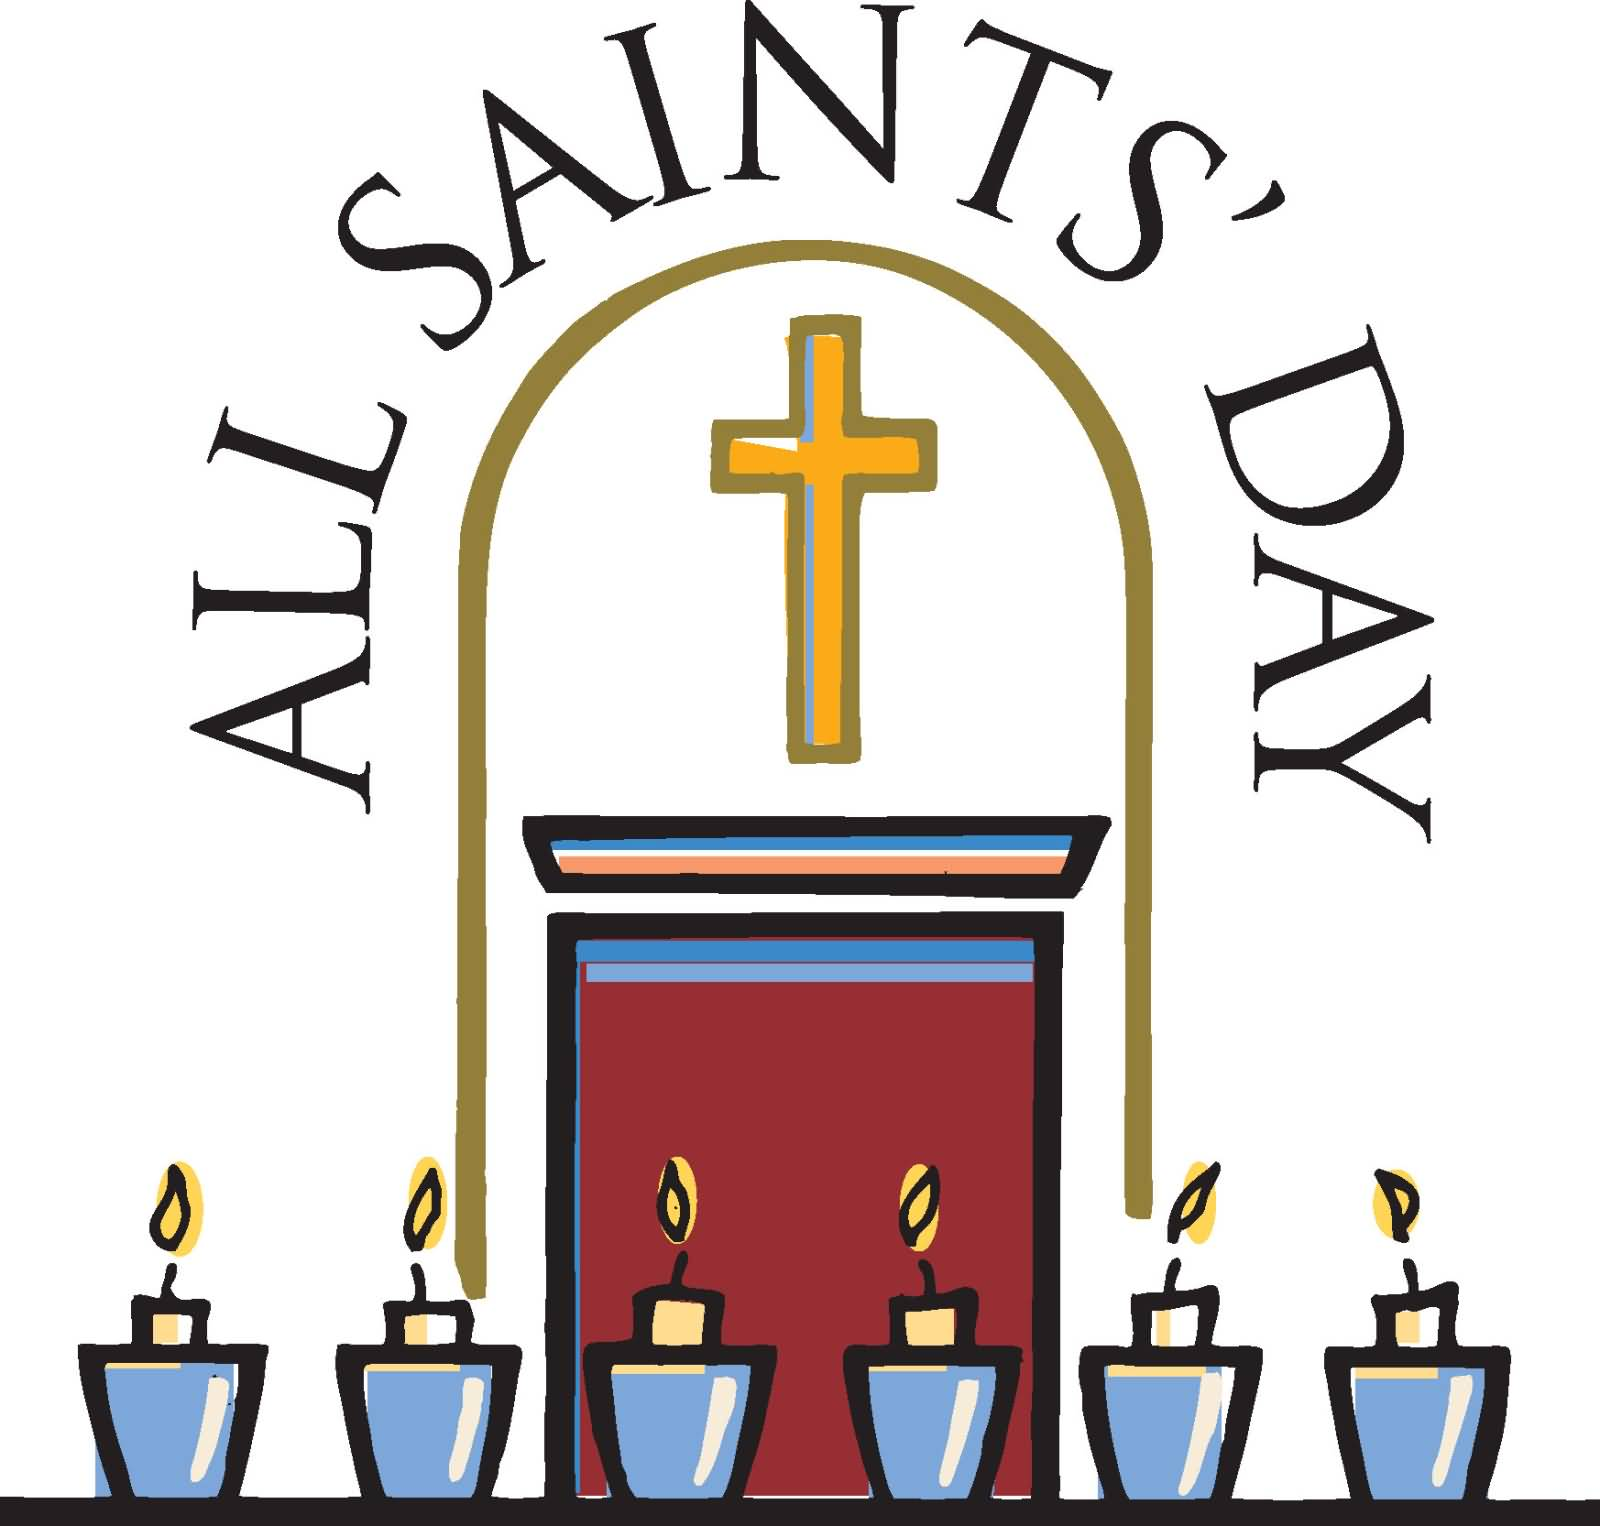 40 Best All Saints Day Wish Pictures And Photos.